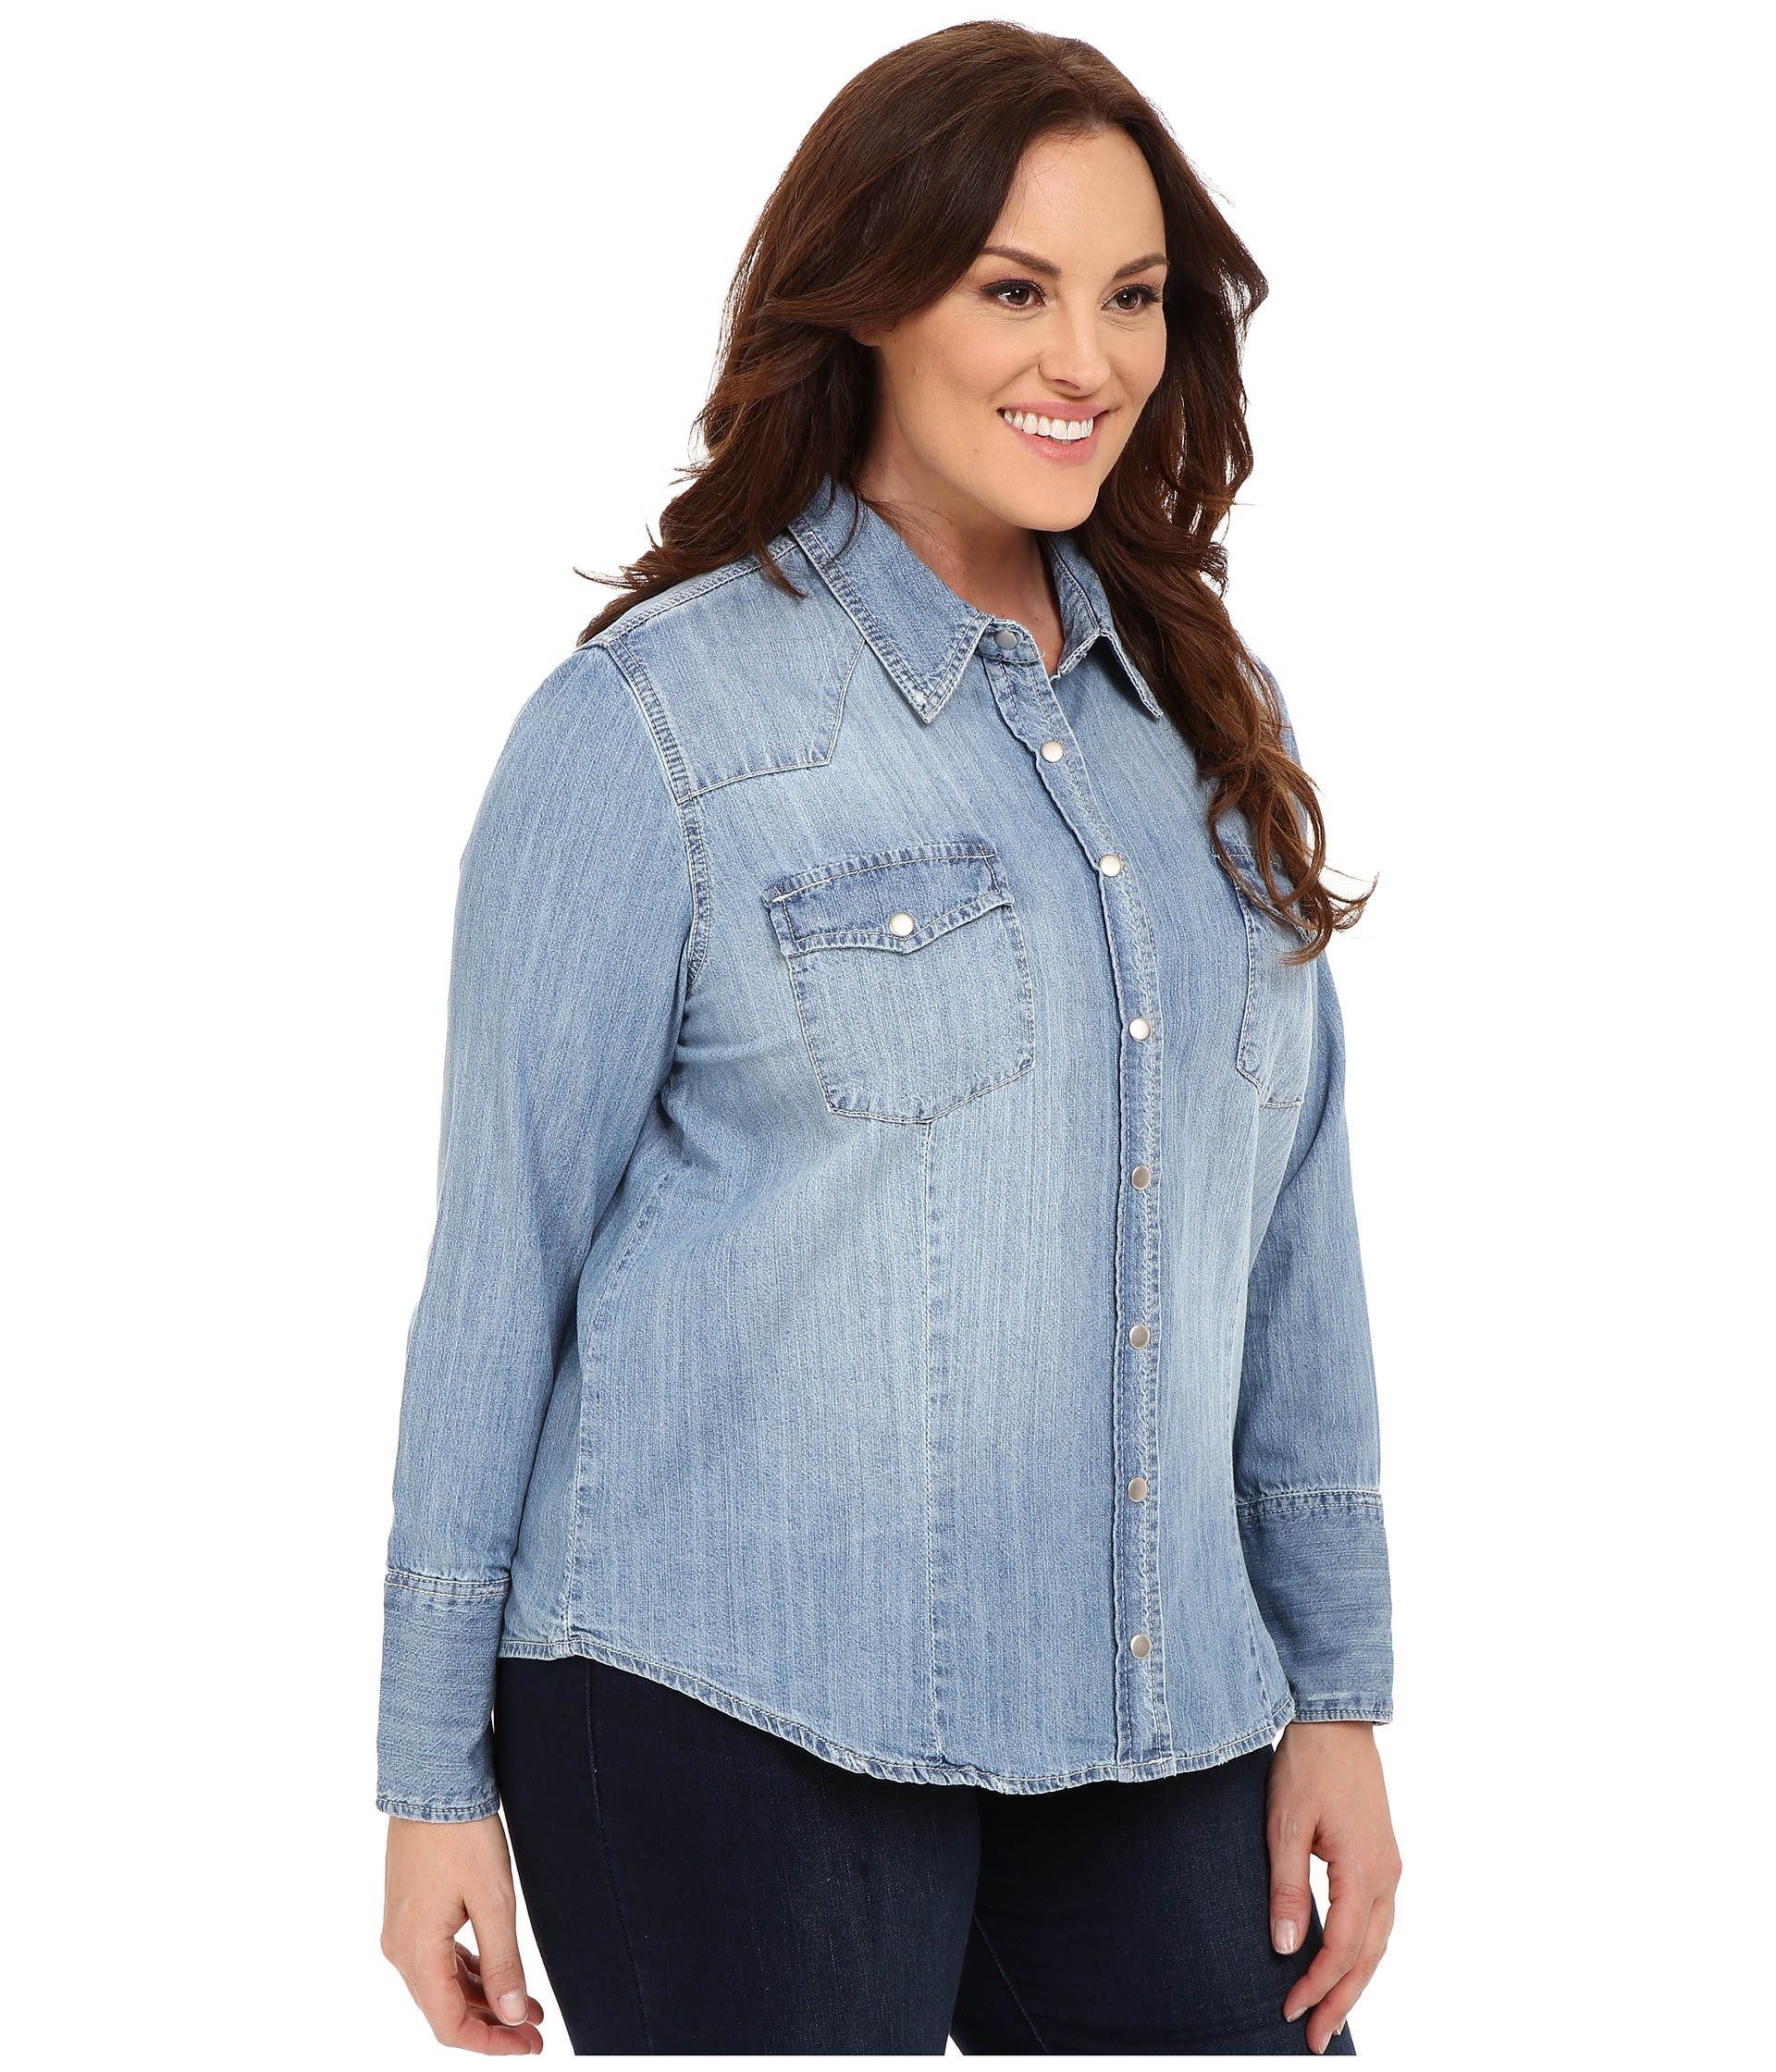 Stetson Light Blue Denim Long Sleeve Western Shirt in Blue | Lyst